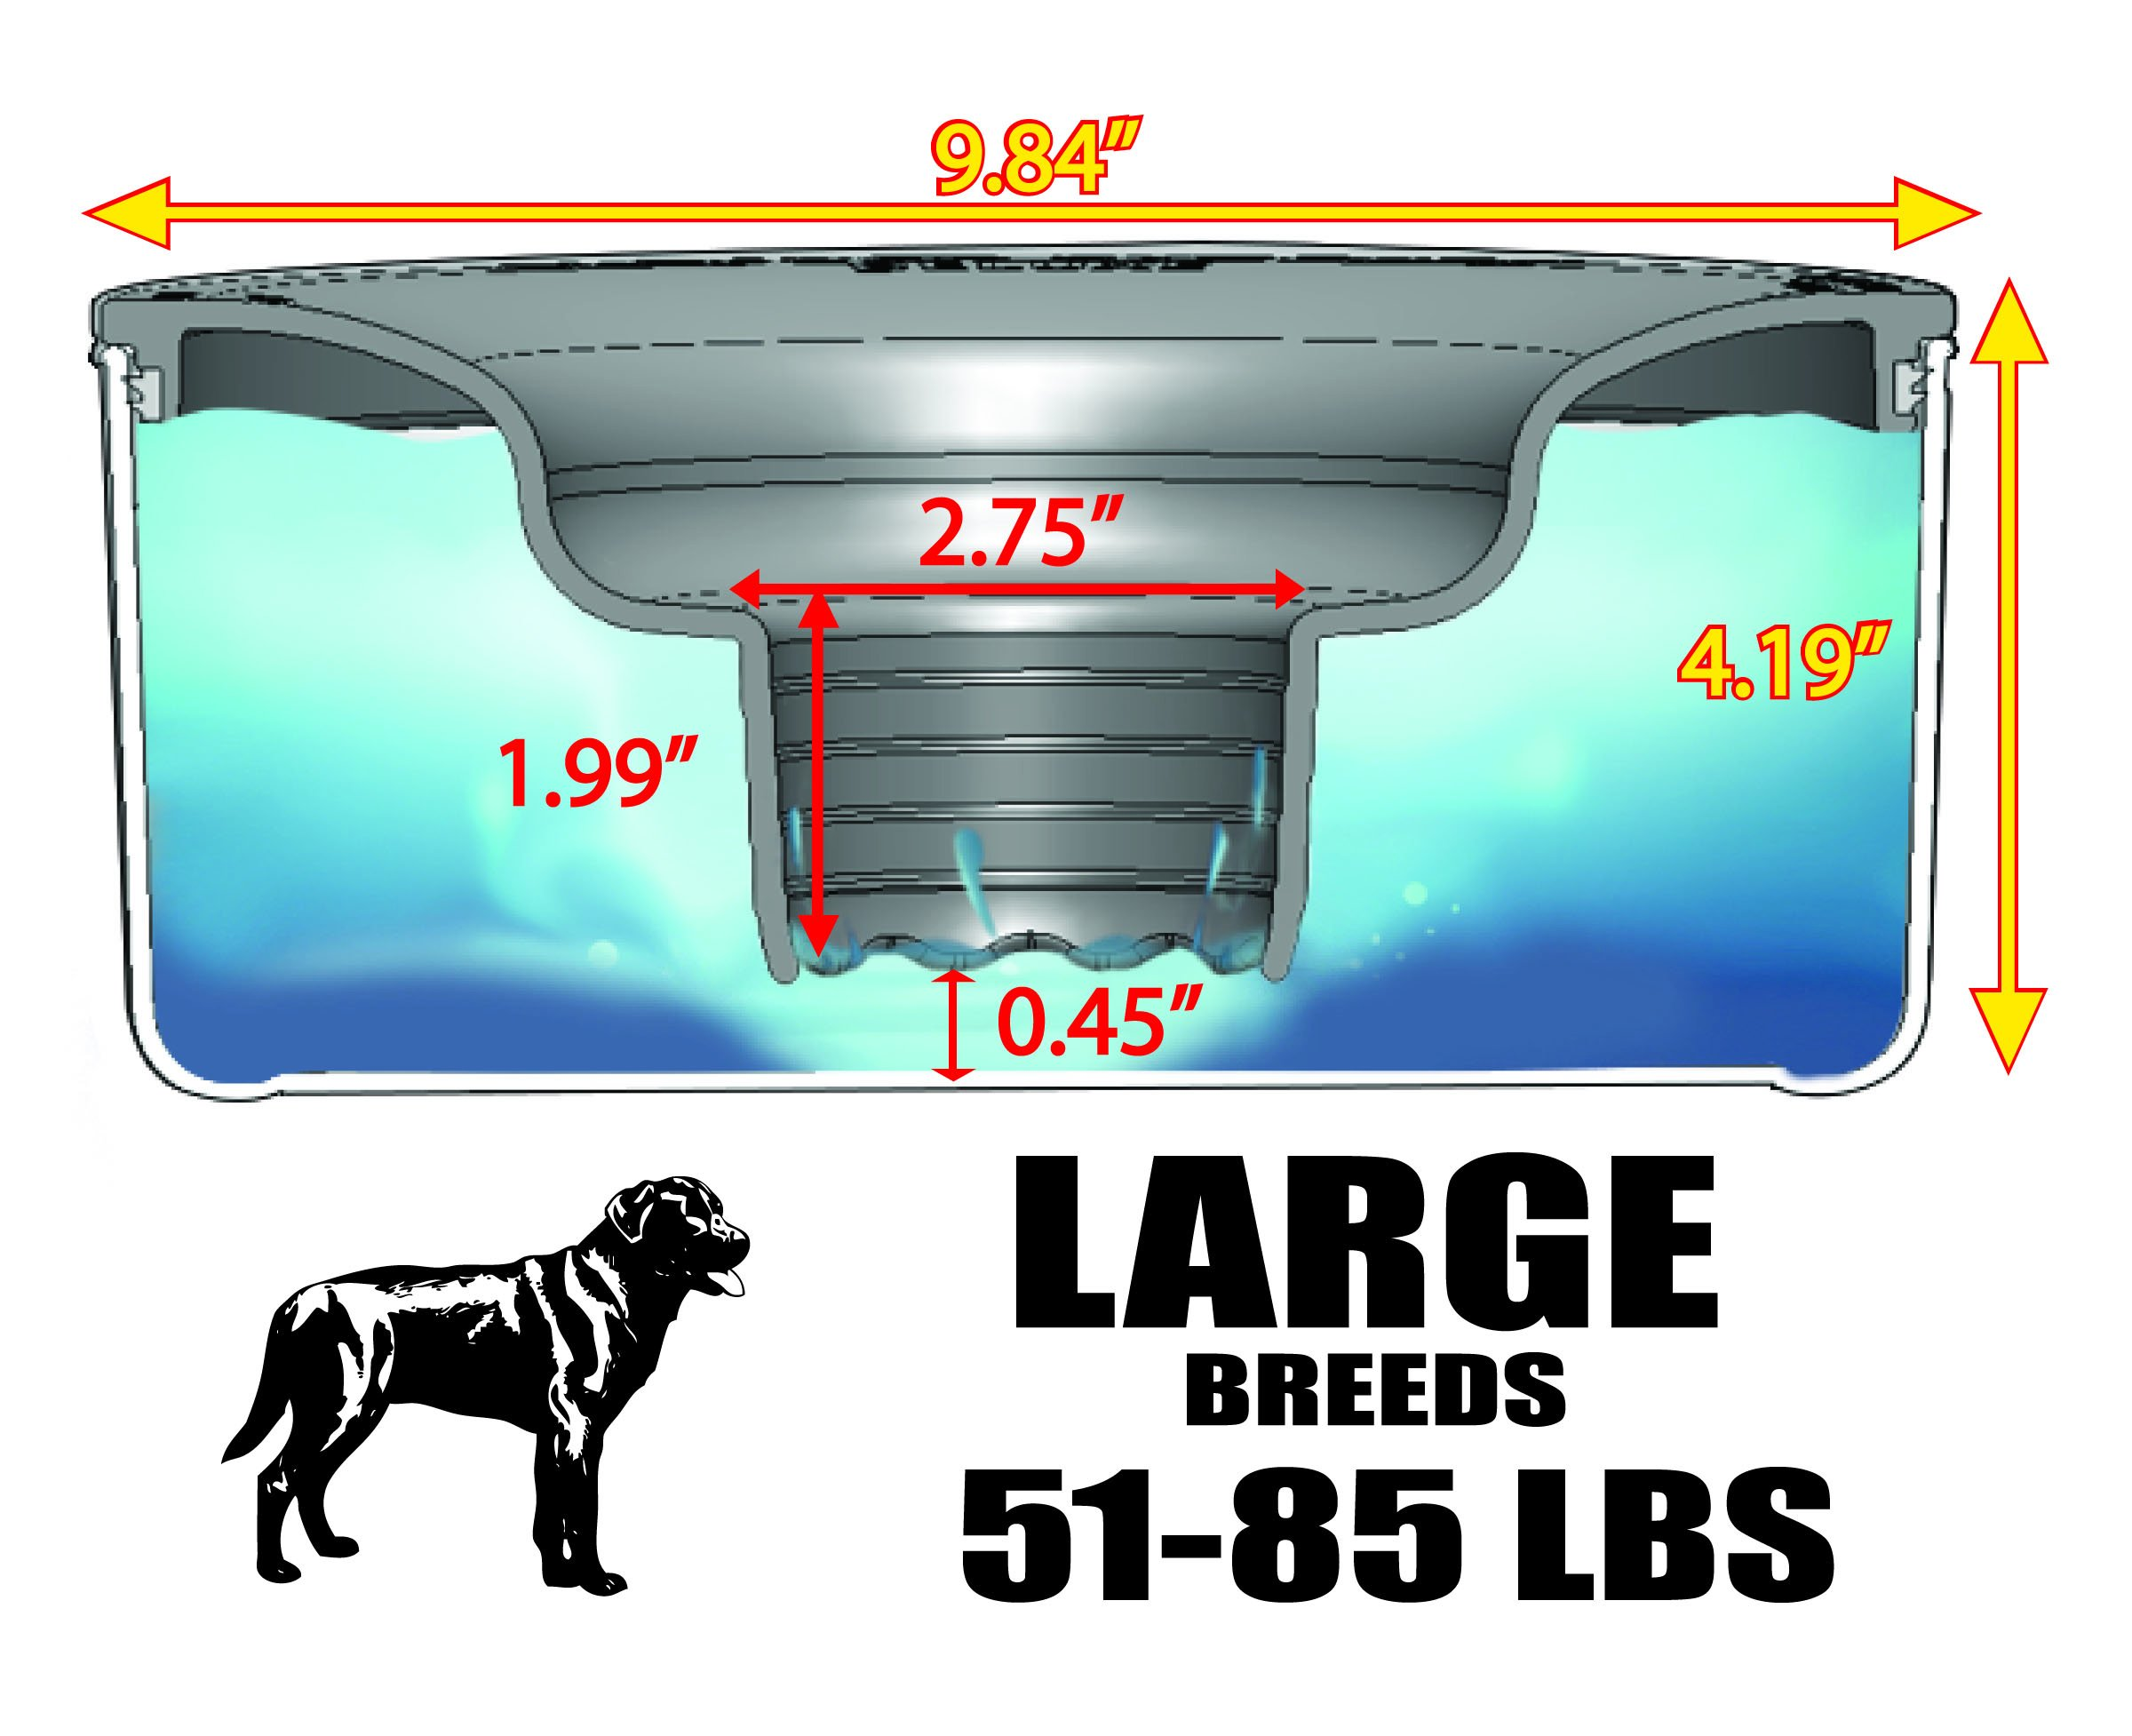 Slopper Stopper Dripless Dog Water Bowl - Large Breed Dogs 51-85 Lbs by Slopper Stopper